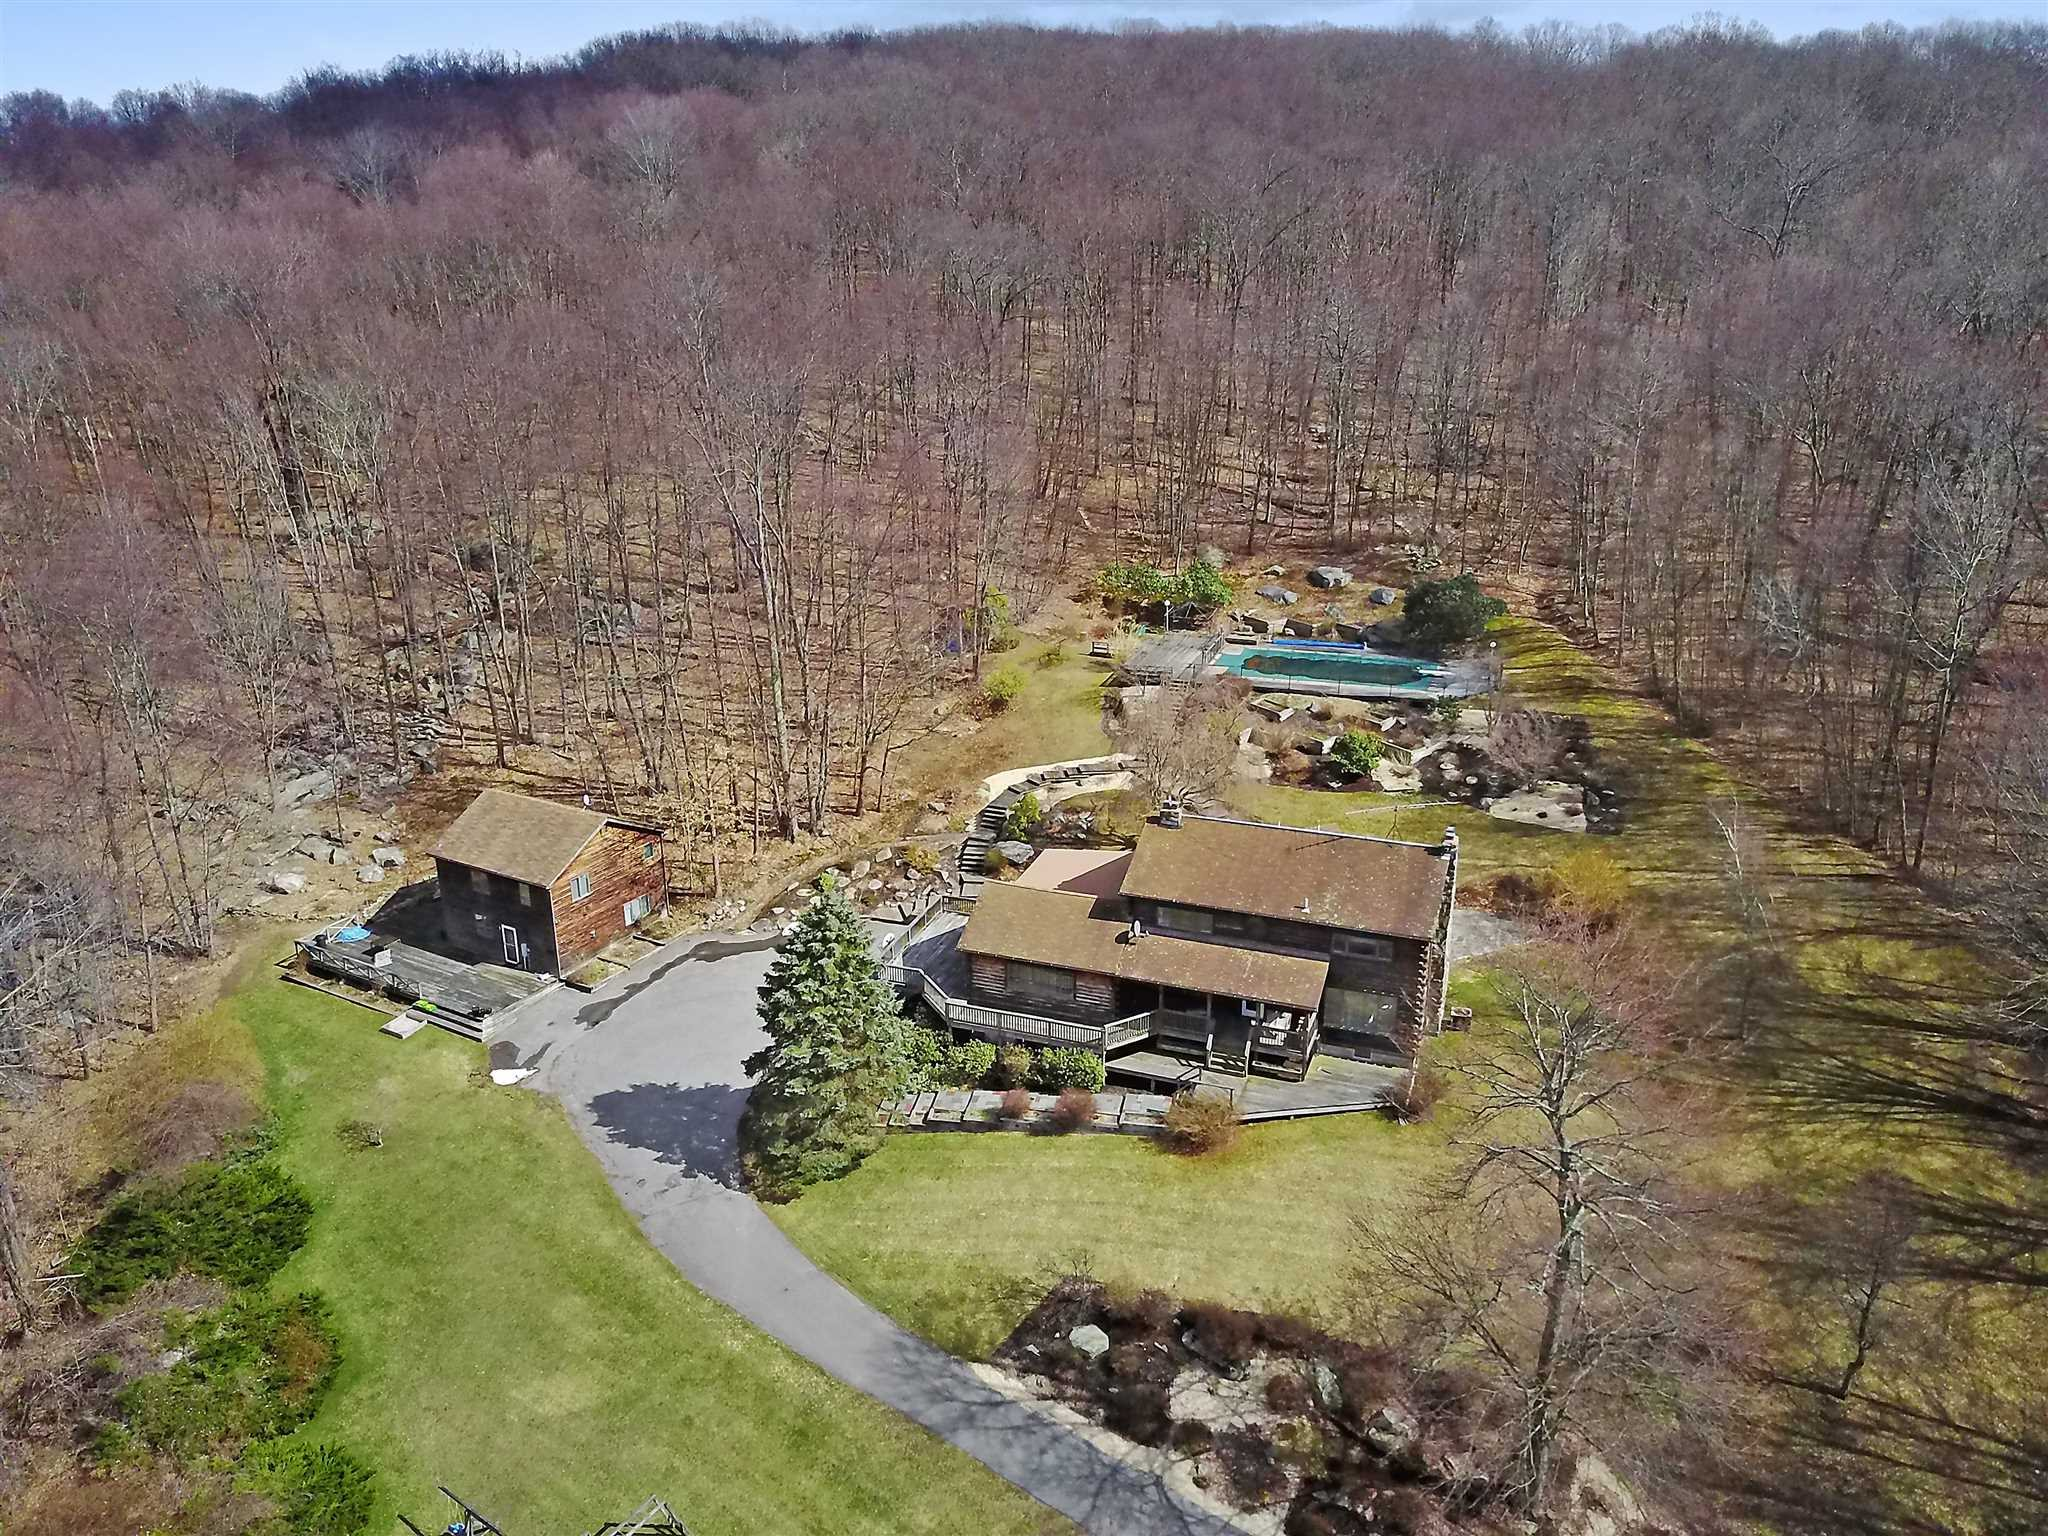 Single Family Home for Sale at 263 HOLMES Road 263 HOLMES Road Pawling, New York 12531 United States